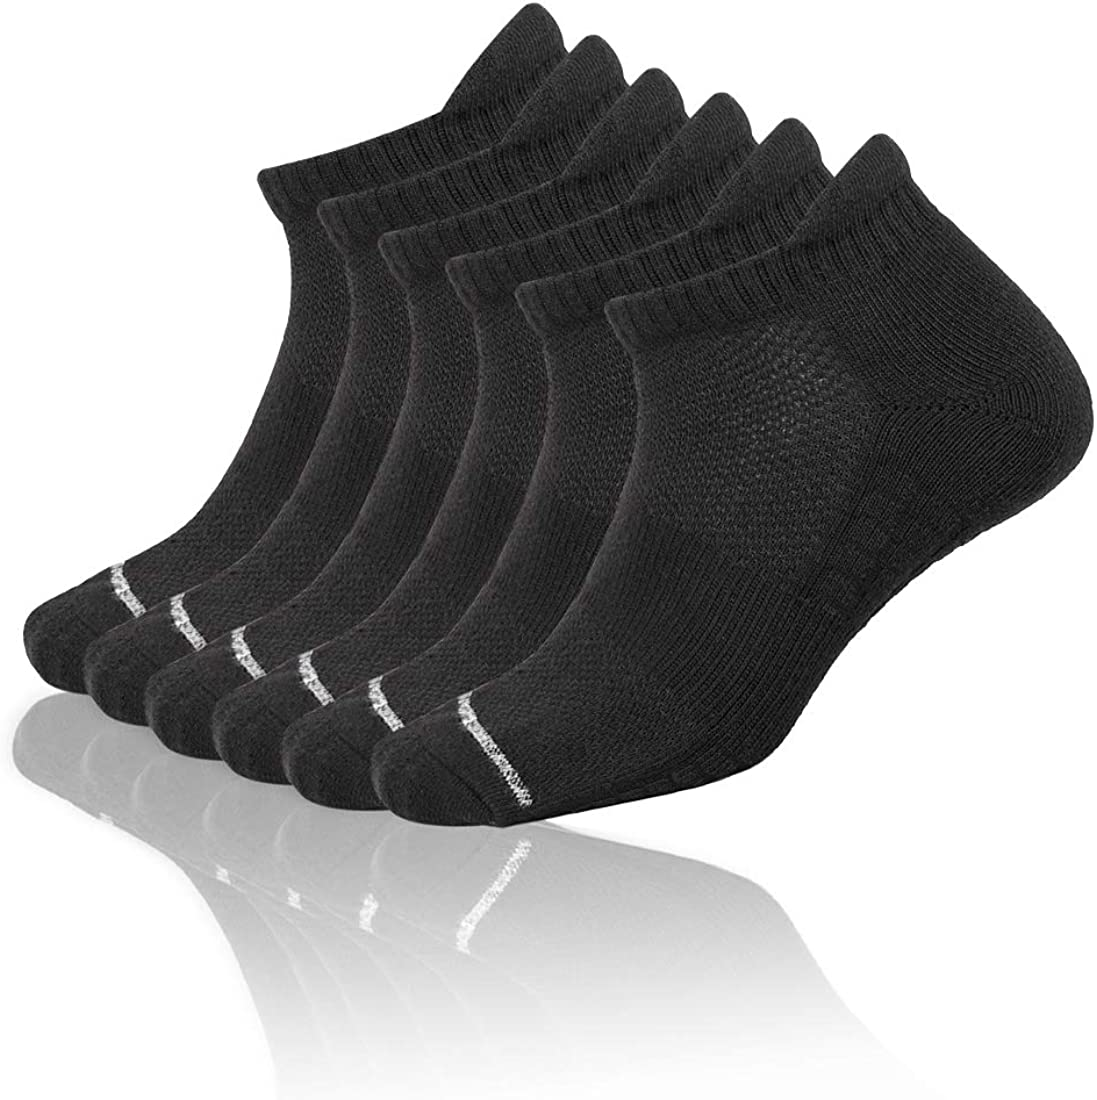 6 Pairs Mens Cushioned Breathable Running Sports Athletic Crew//Low Cut Ankle With Tab Socks